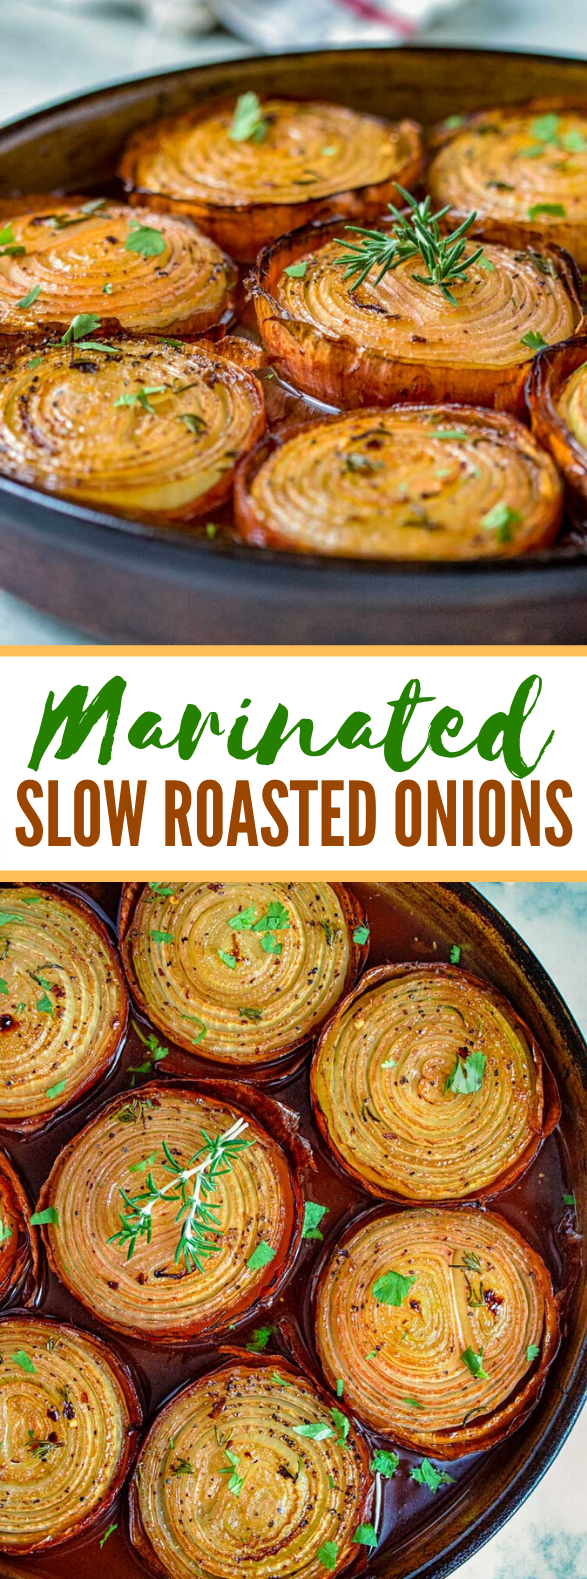 MARINATED SLOW ROASTED ONIONS #vegetarian #thanksgiving